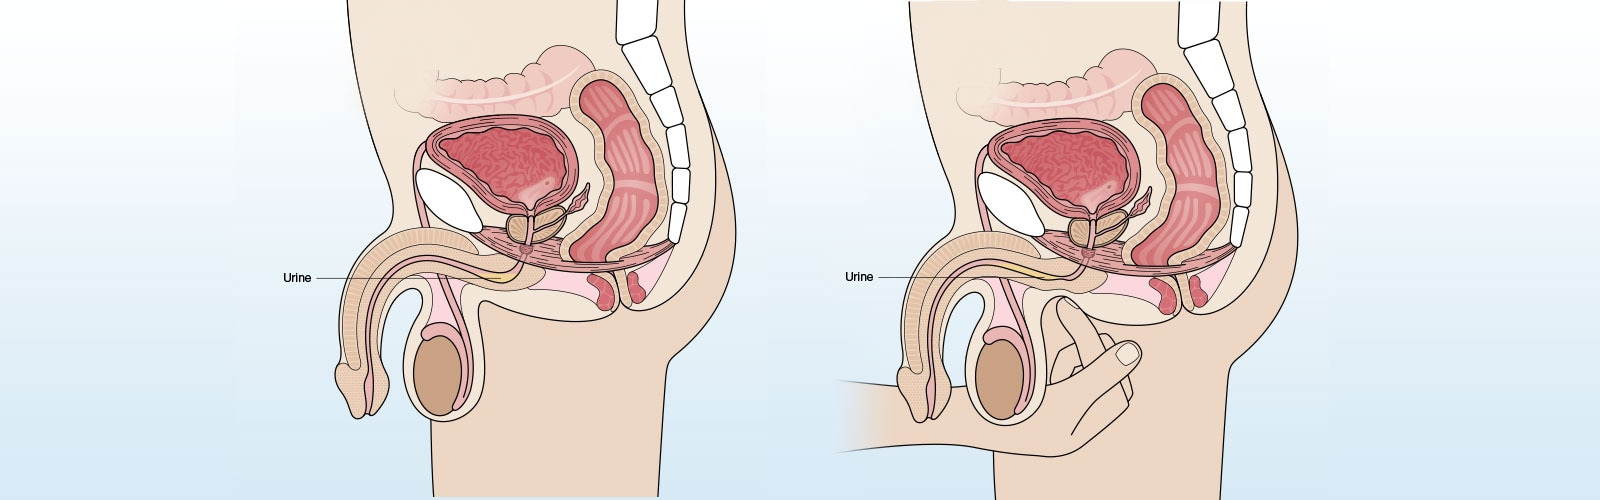 Anatomic illustration of a finger pressing on the urethra behind the scrotum, pushing trapped urine forward.